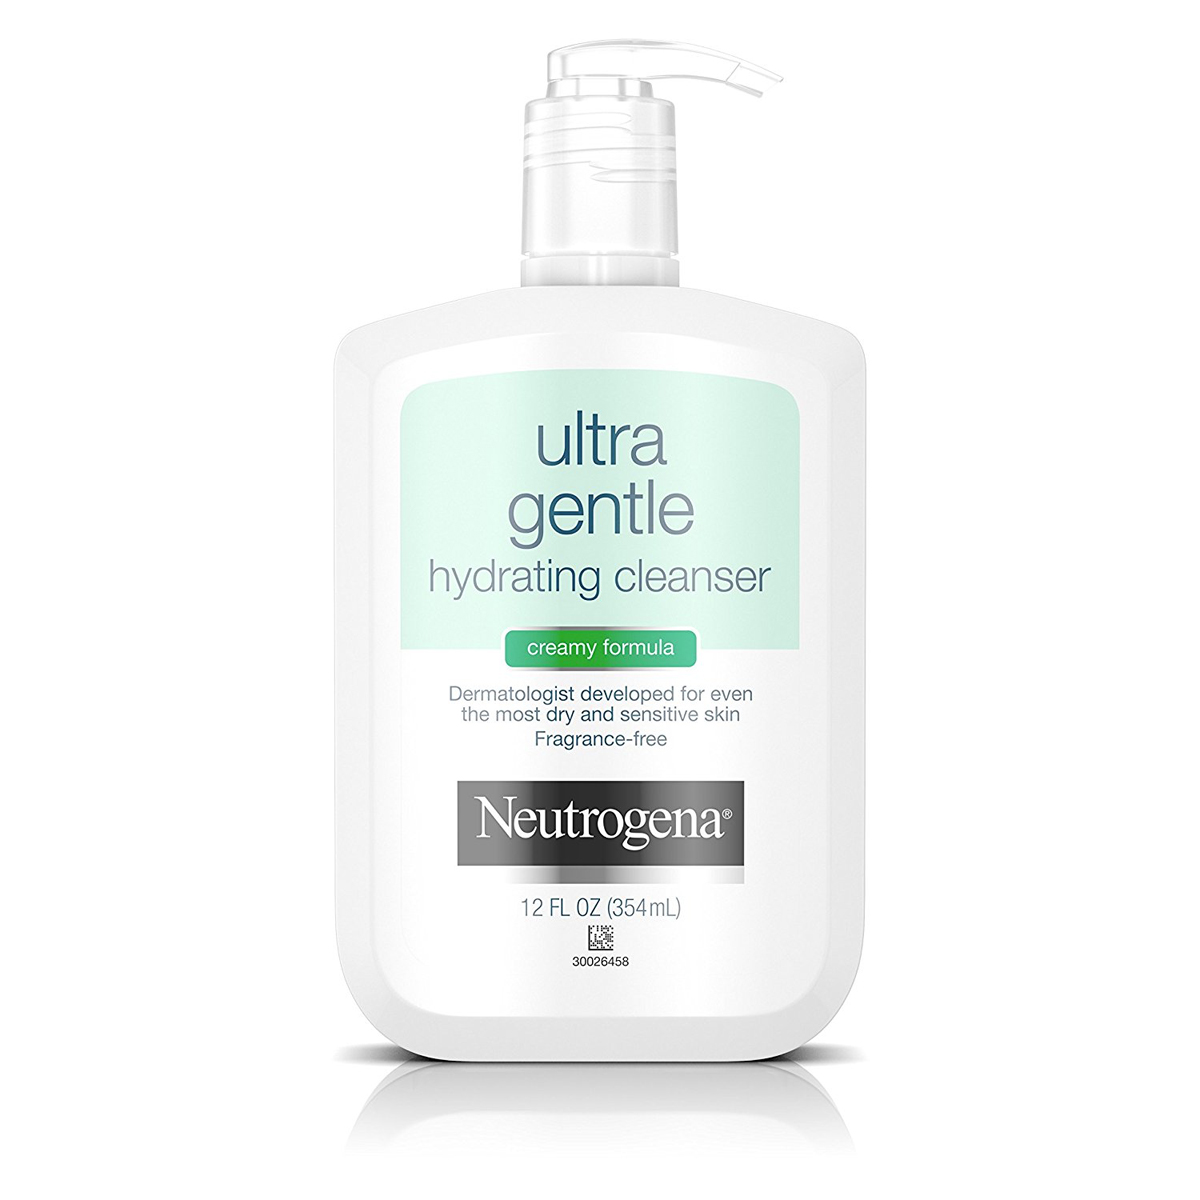 Best Cleanser for Dry Skin: Neutrogena Ultra Gentle Hydrating Daily Facial Cleanser